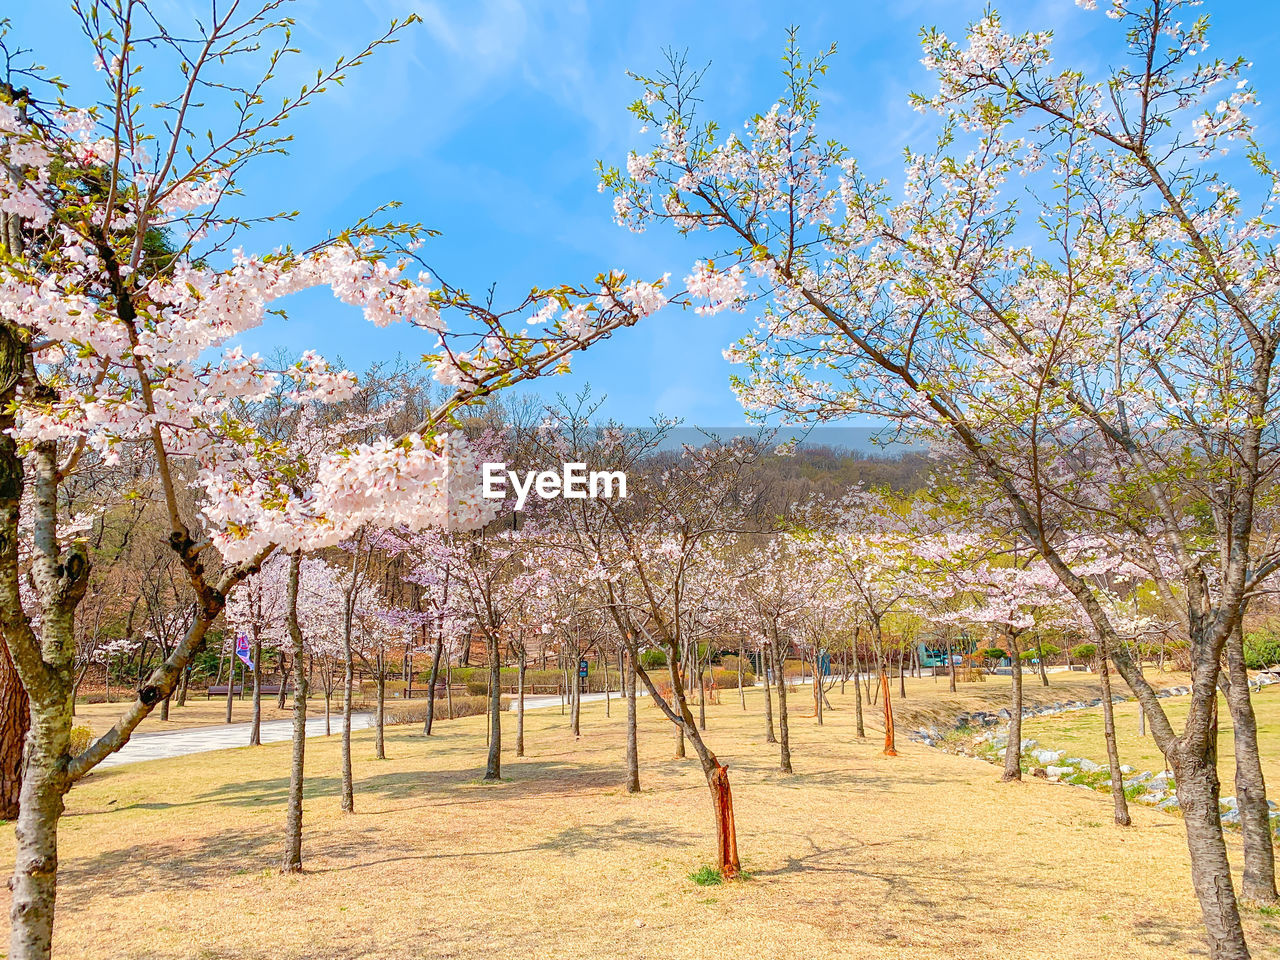 tree, plant, beauty in nature, nature, growth, sky, tranquility, branch, day, blossom, flowering plant, flower, springtime, tranquil scene, scenics - nature, sunlight, no people, landscape, park, land, outdoors, cherry blossom, cherry tree